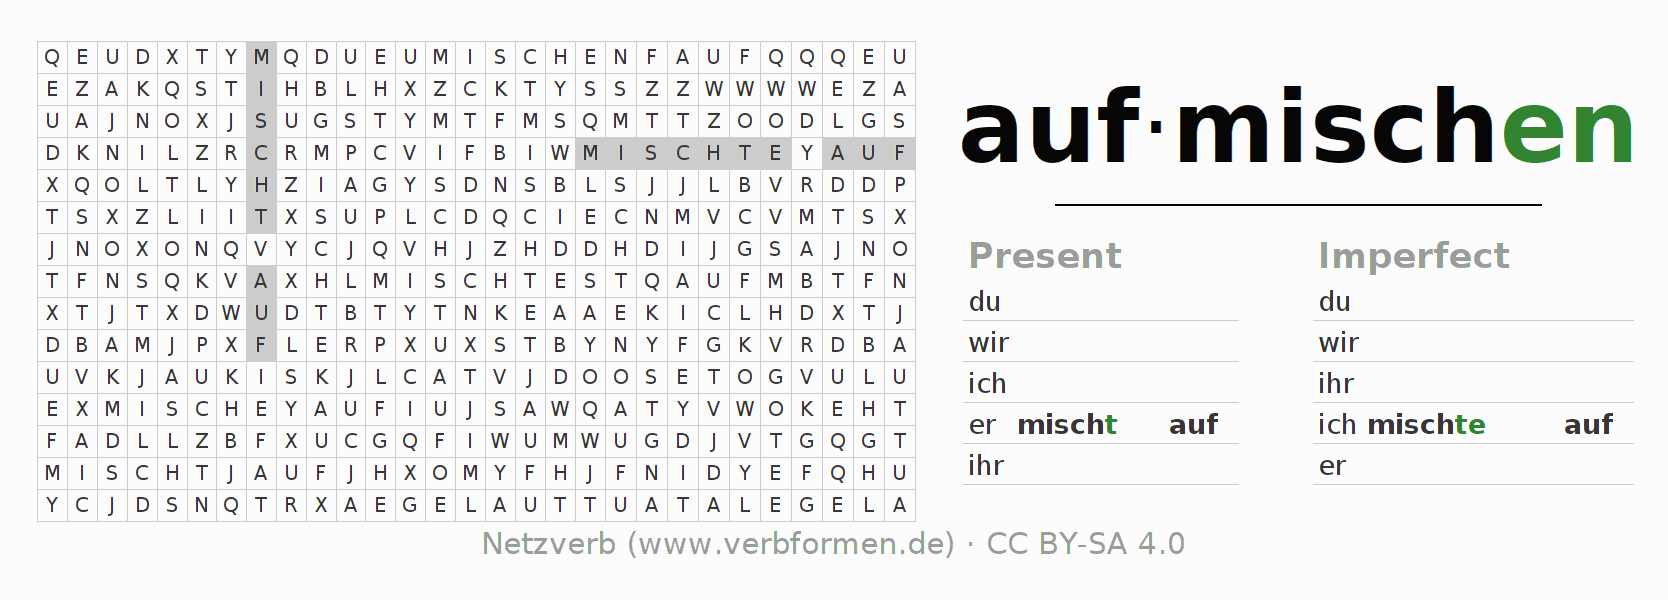 Word search puzzle for the conjugation of the verb aufmischen